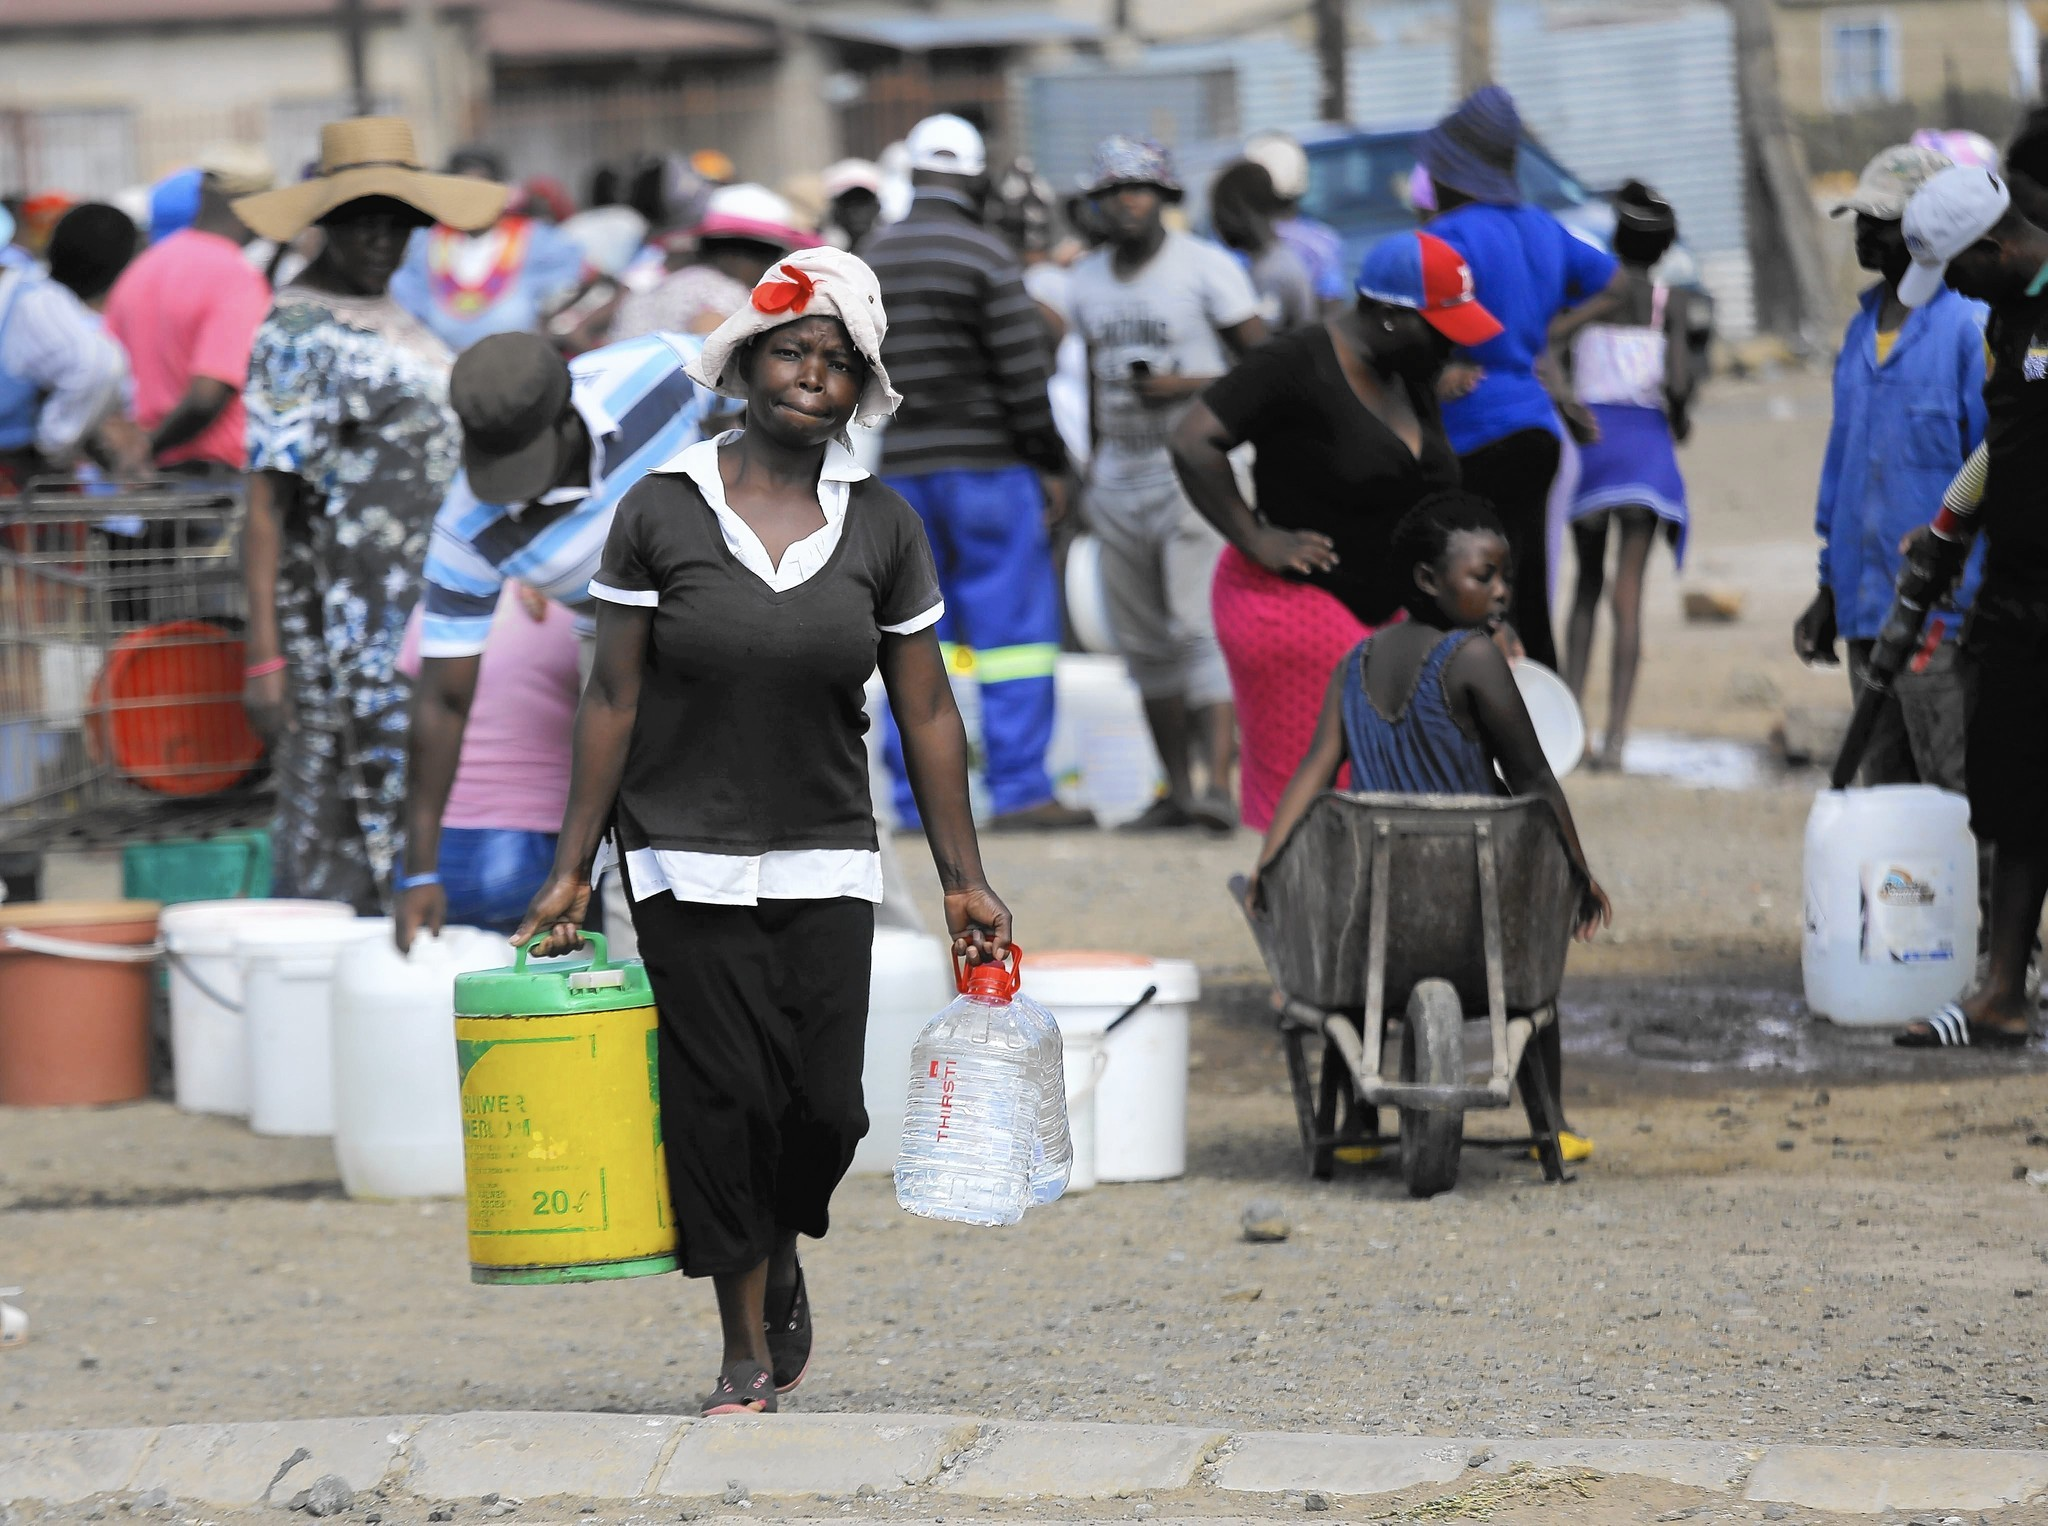 In South Africa, volunteer water deliveries bring relief to drought areas